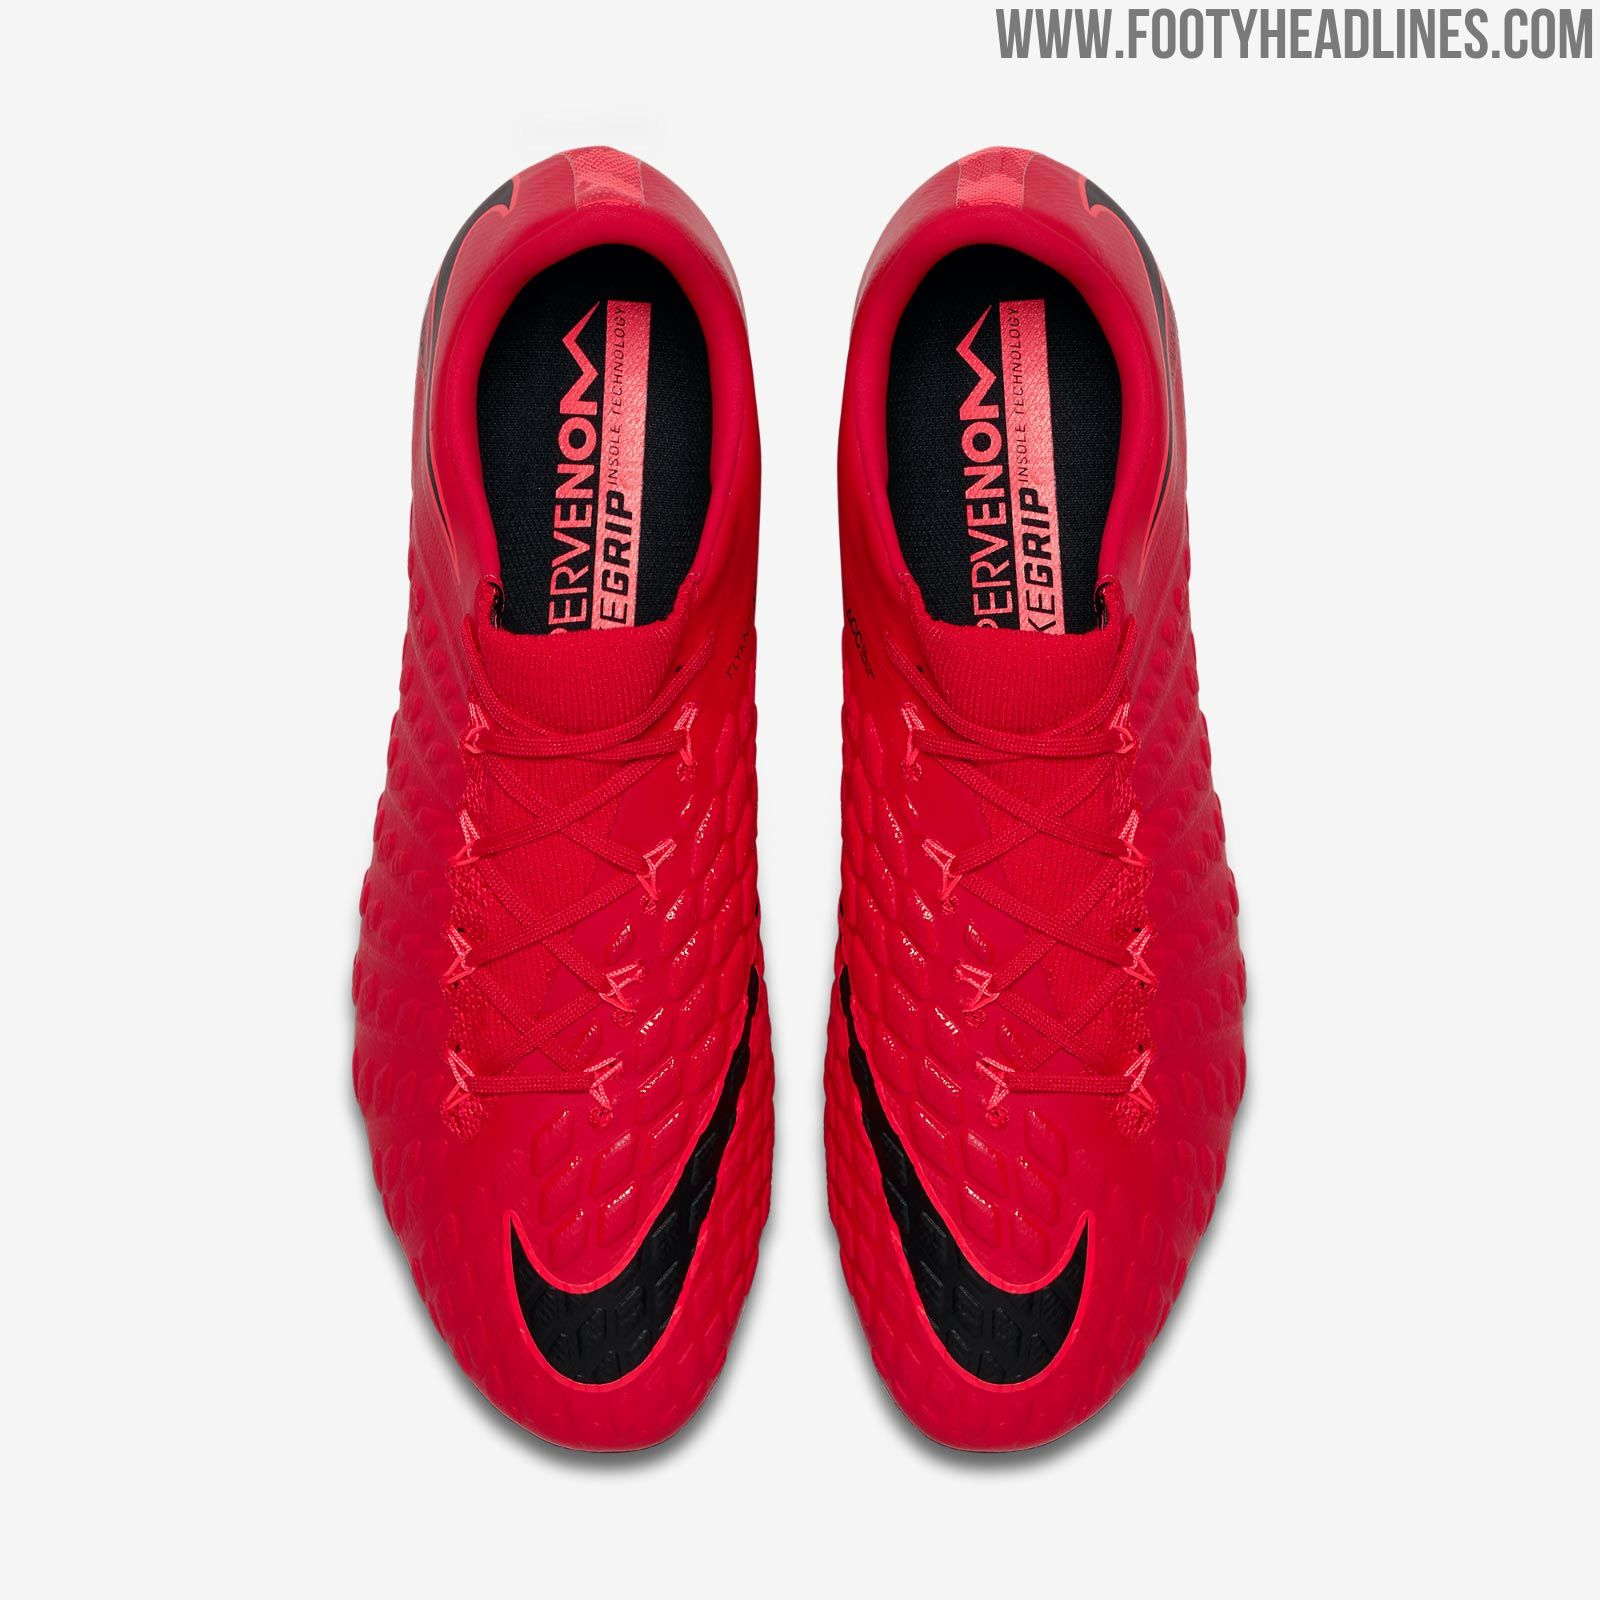 8d07880a6 The Nike Hypervenom Phantom III football boots will receive a fiery color  update this November.